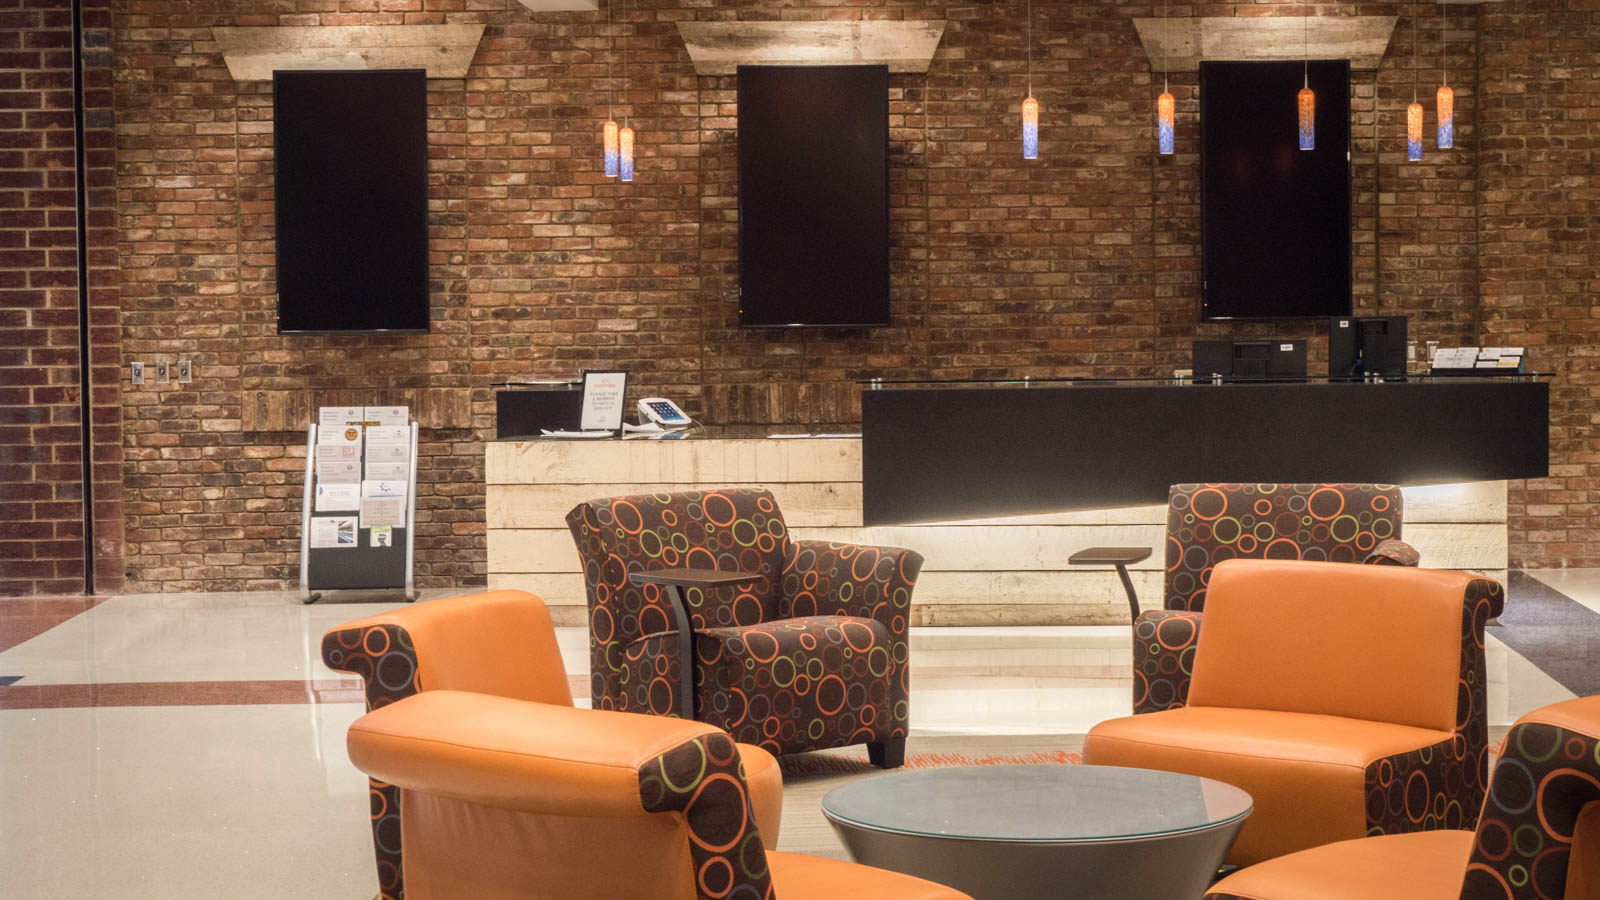 The reception desk in the main lobby is made from reclaimed wood and brick from the former Bassett Furniture Superior Lines factory.